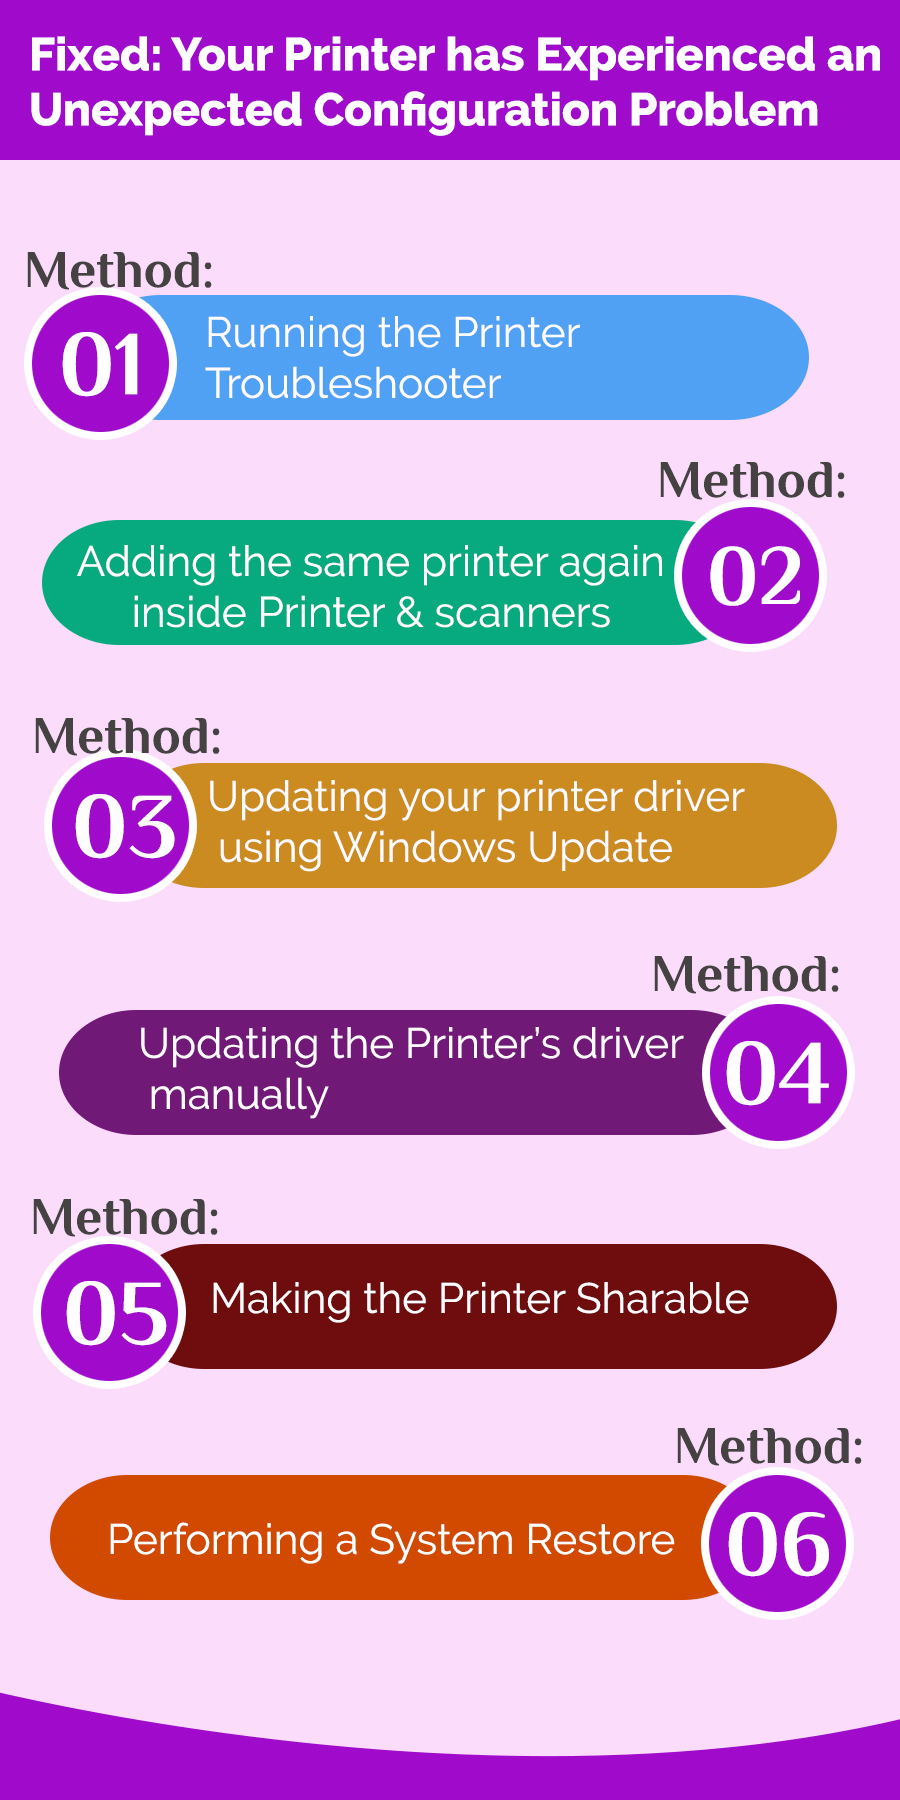 Printer-has-Experienced-Unexpected-Configuration-Problem